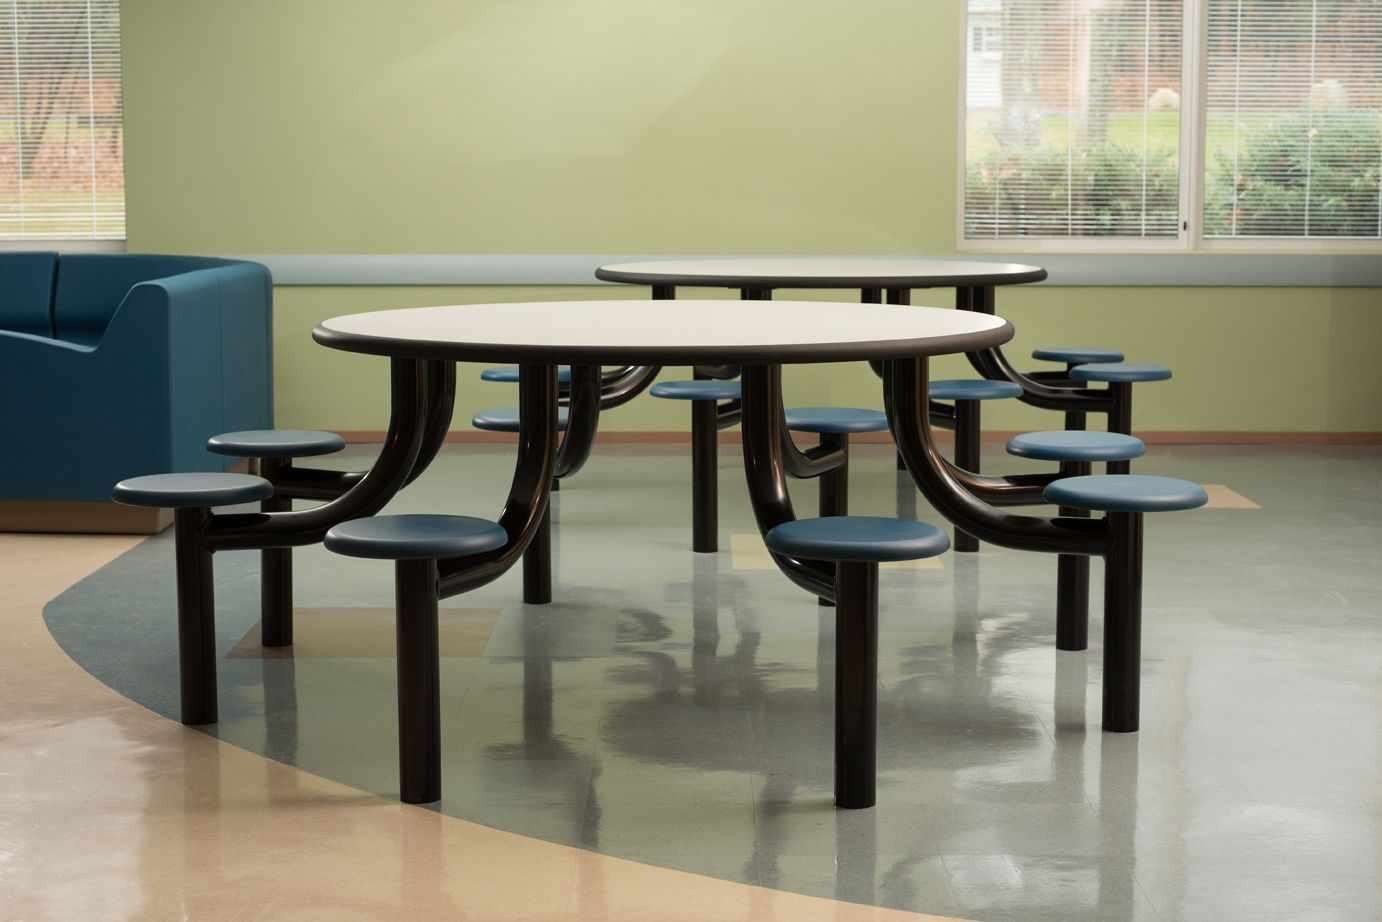 Norix Furnitures MaxMaster Tables At Hampstead Hospital In - Hampstead furniture